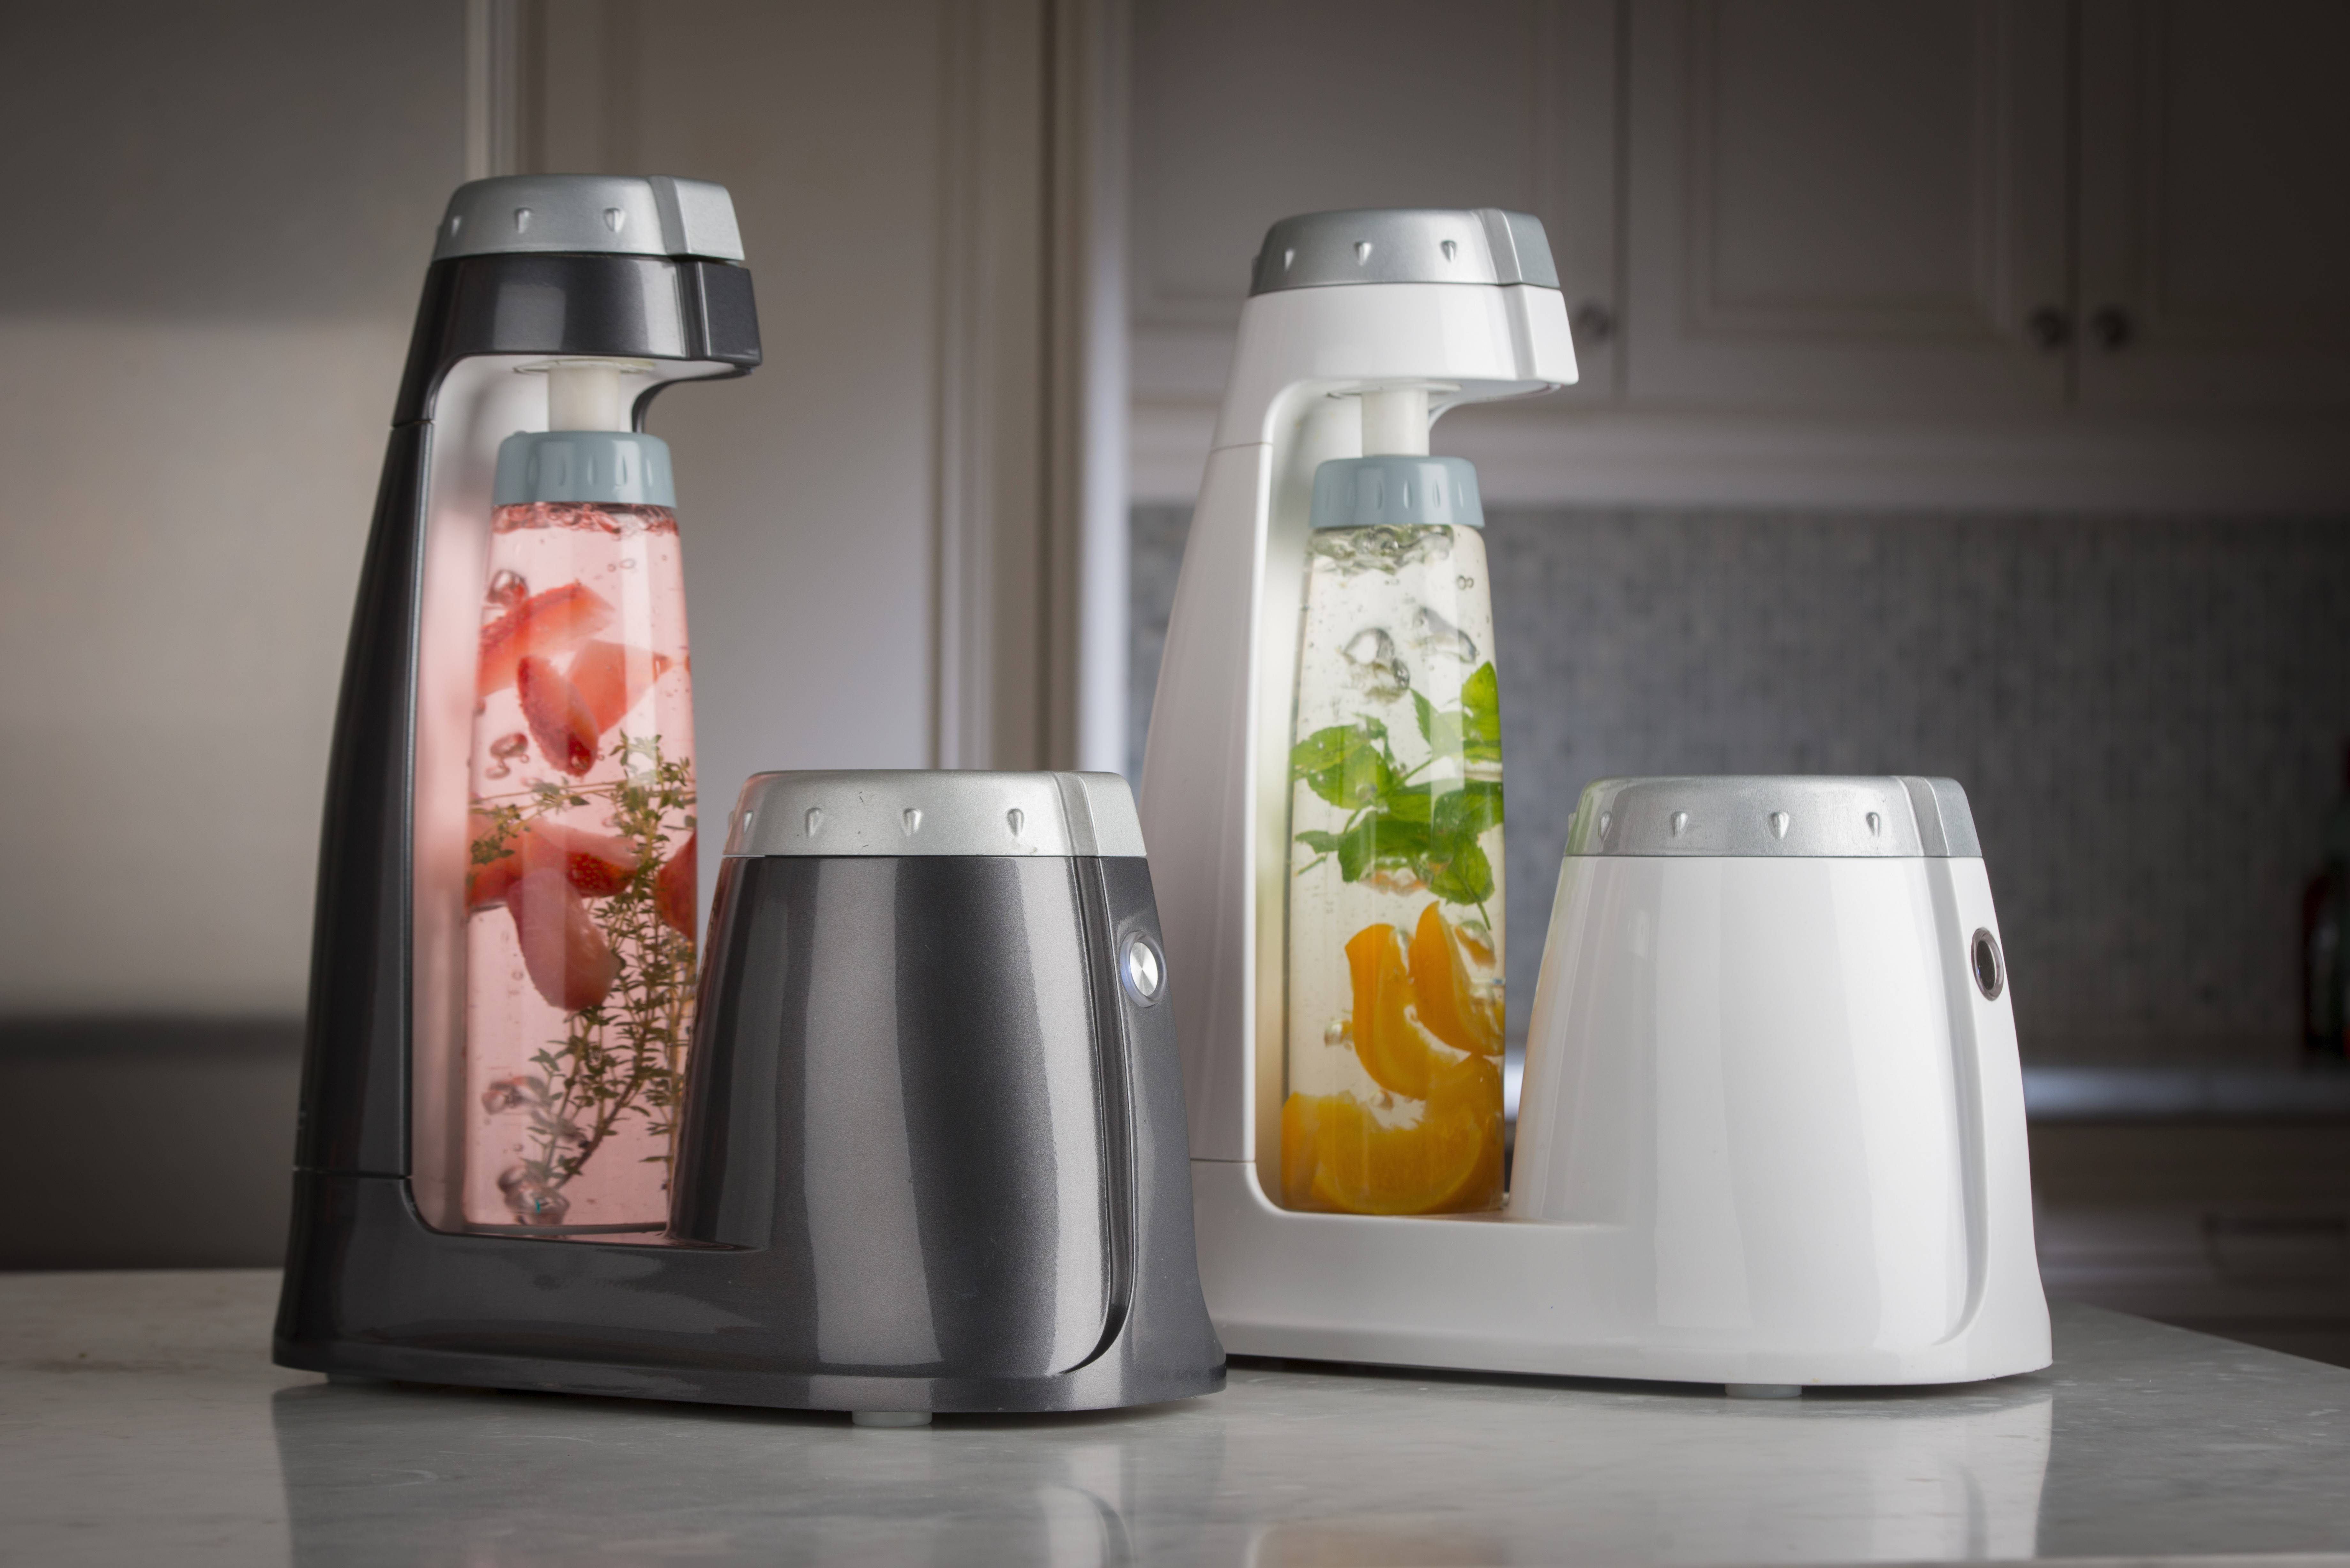 Fizz it: Turn ordinary tap water into a refreshing quencher with bonne O home carbonation system. The countertop unit features a patented tank-free carbonator to turn infused waters (think lemon-basil or cucumber-lime) into sugar-free sparkling beverages. $149.99. Available this spring at Williams Sonoma and Bed, Bath and Beyond.